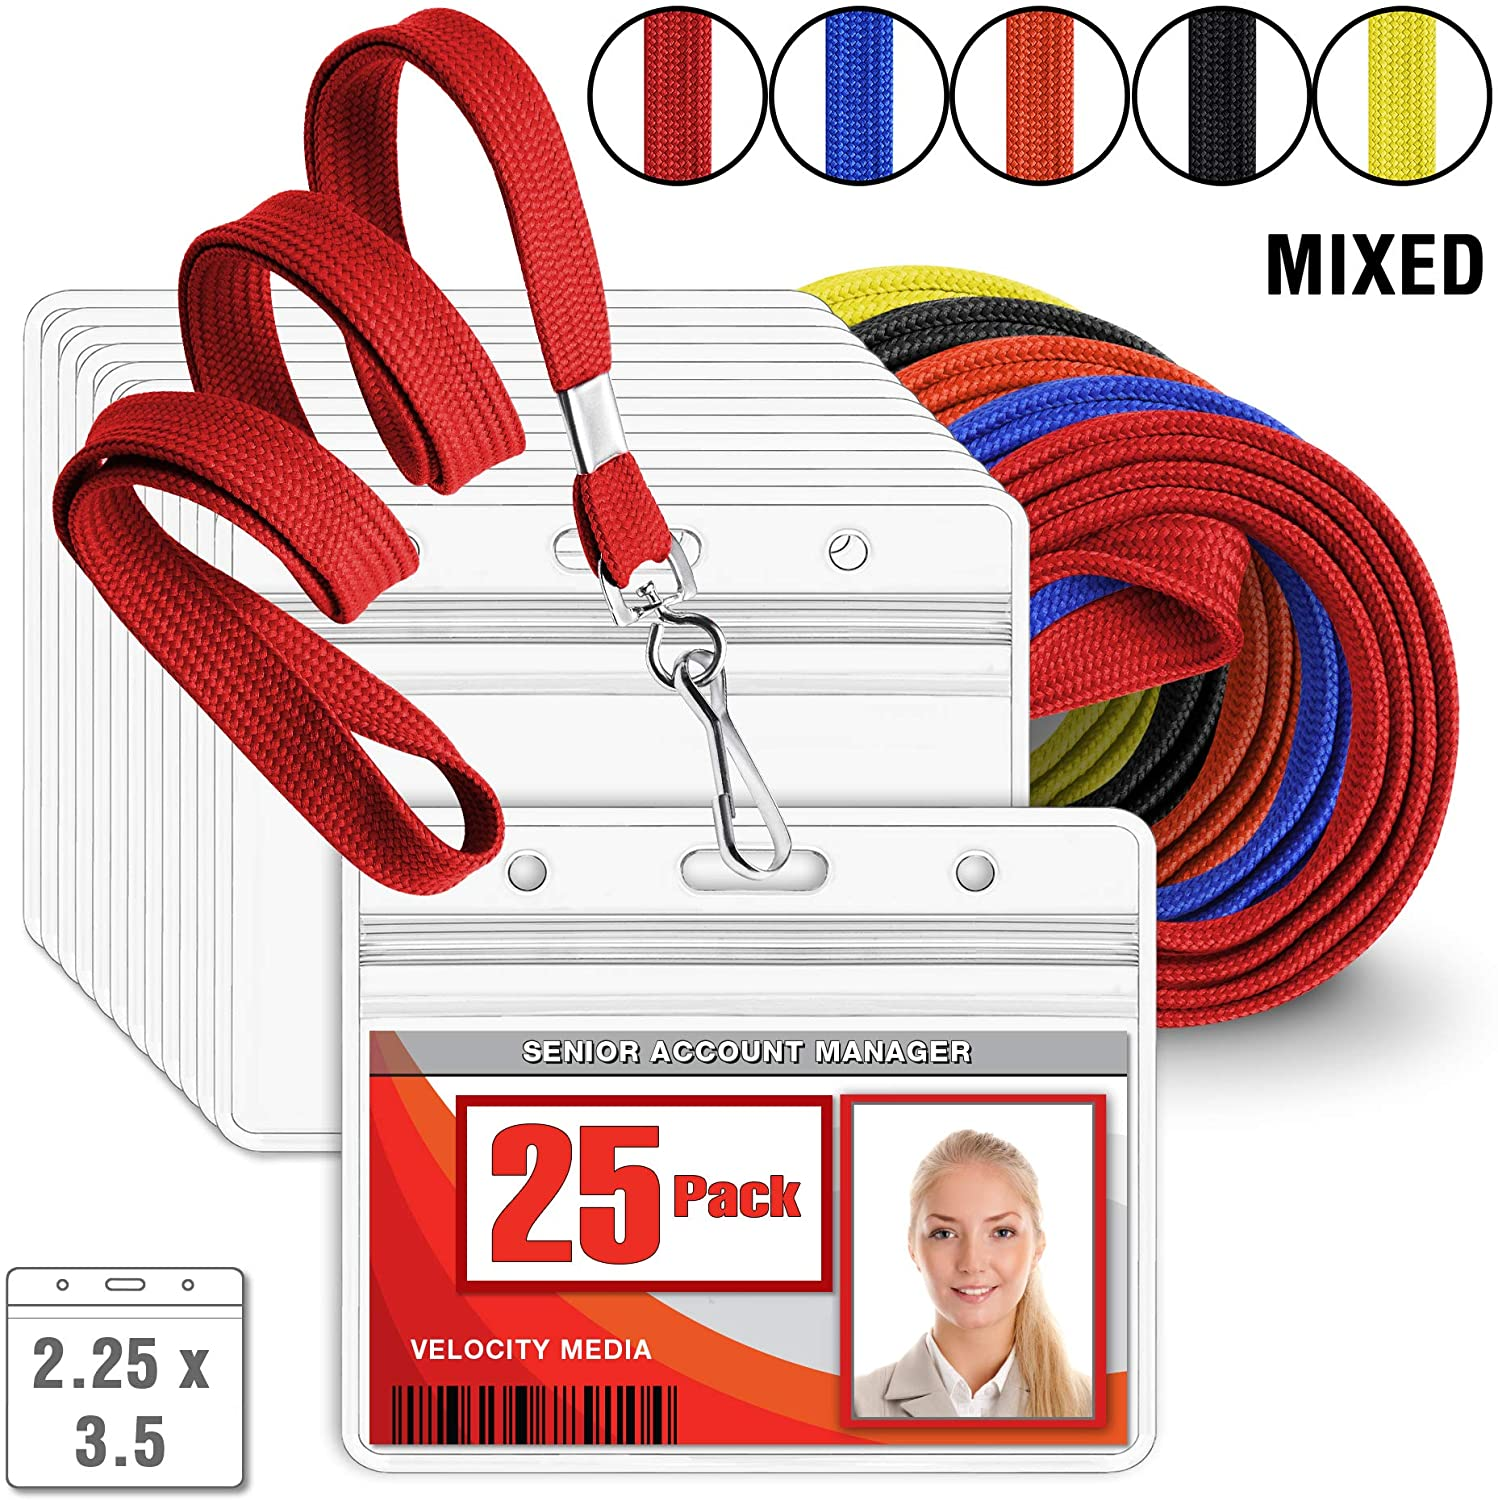 MIFFLIN Flat Lanyard with Horizontal ID Name Badge Holder Set (Mixed Lanyard, Clear 2.25x3.5 Inch Tag Holder, 25 Pack)